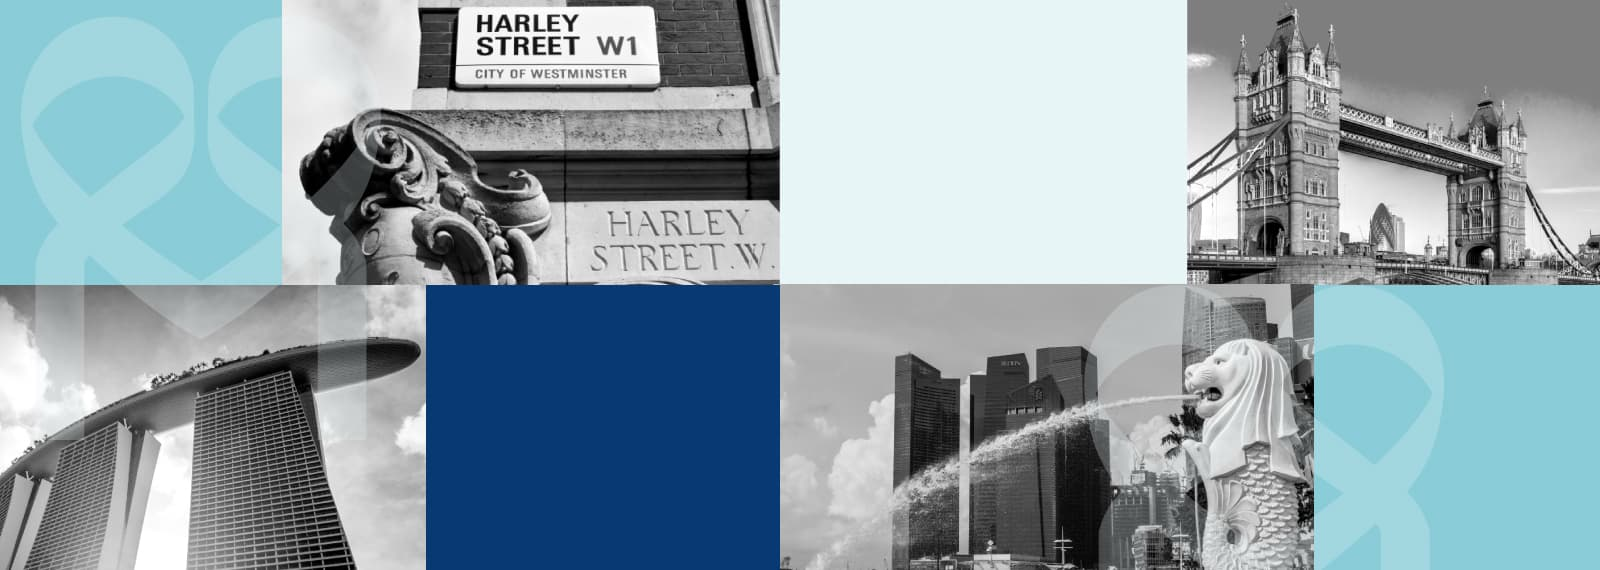 Harley Street One Stop Centre